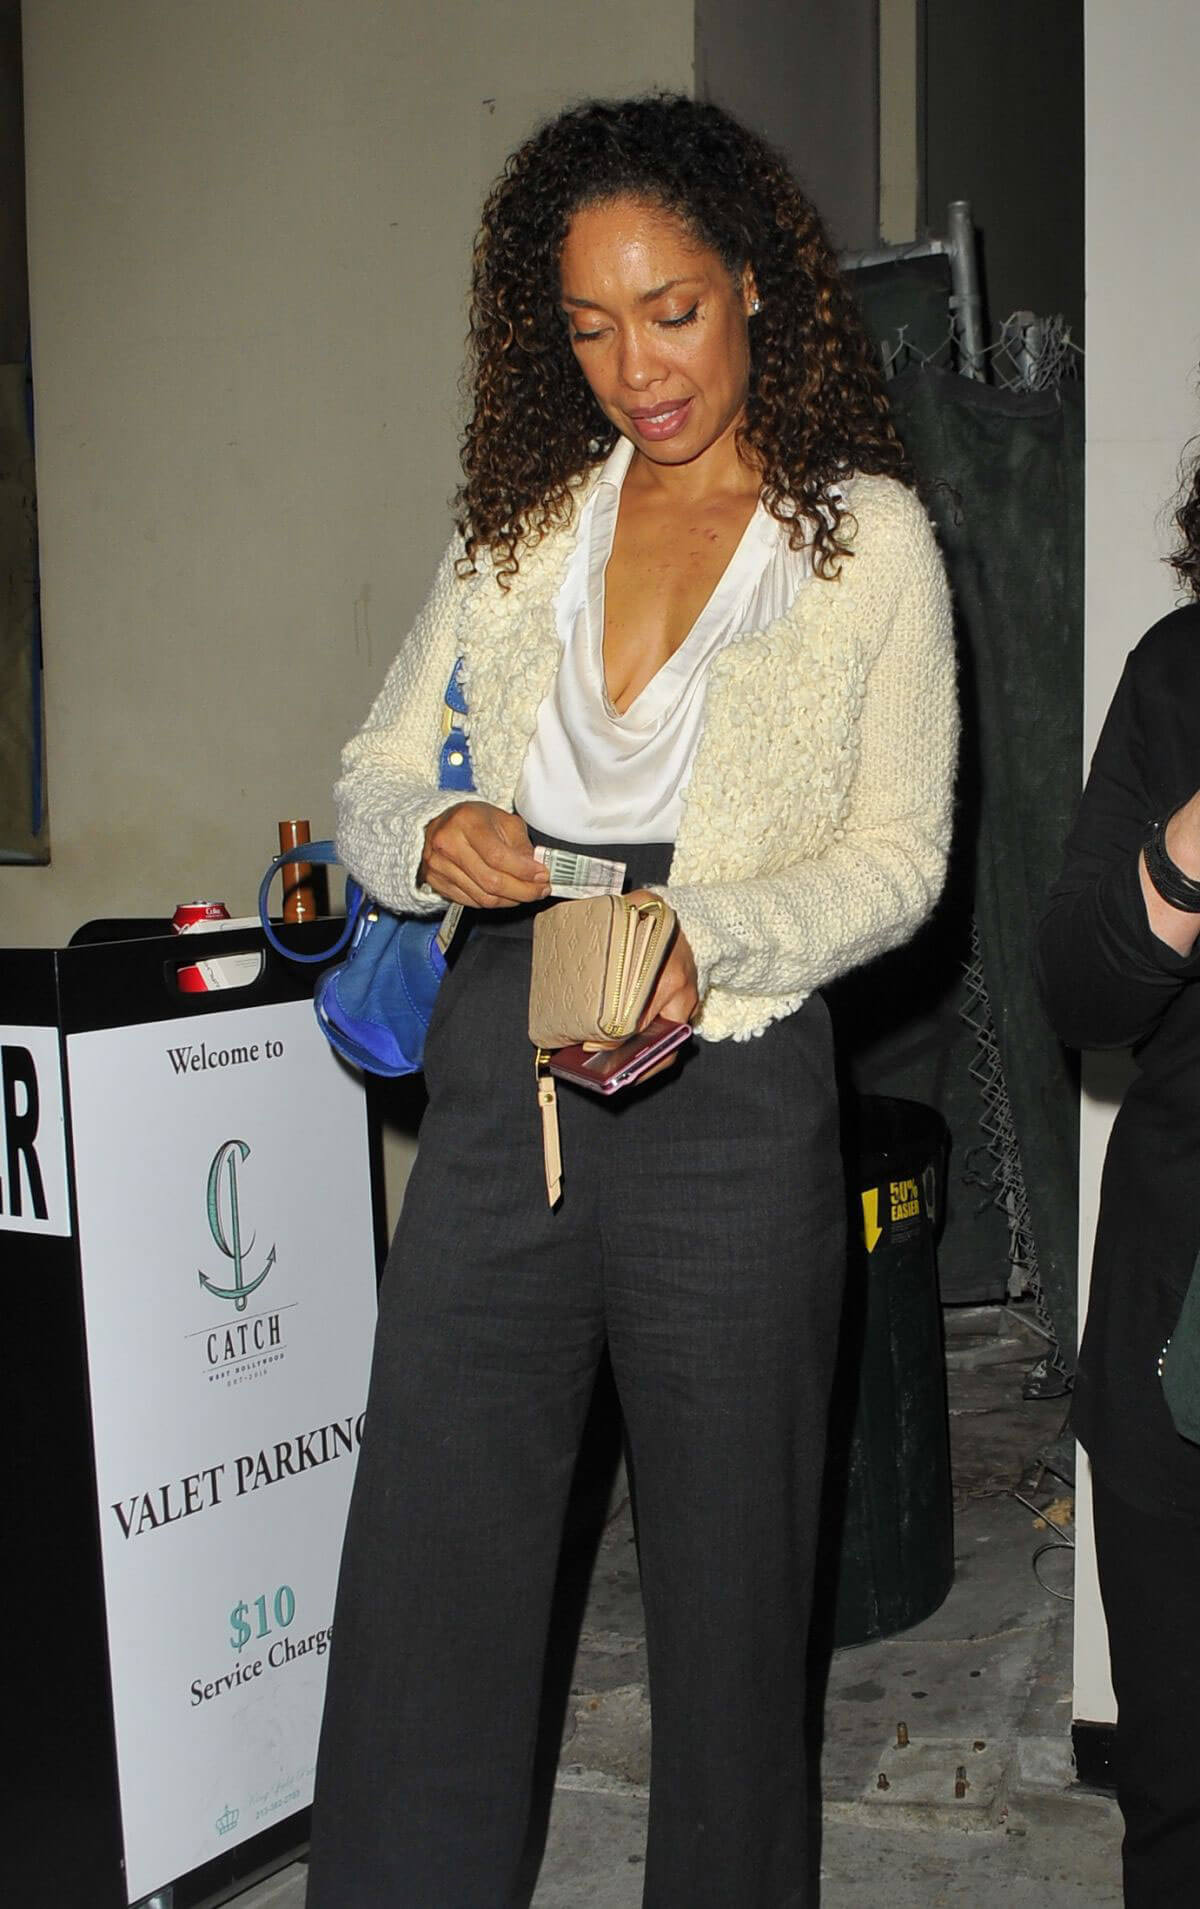 Gina Torres Stills at Catch LA in West Hollywood Photos